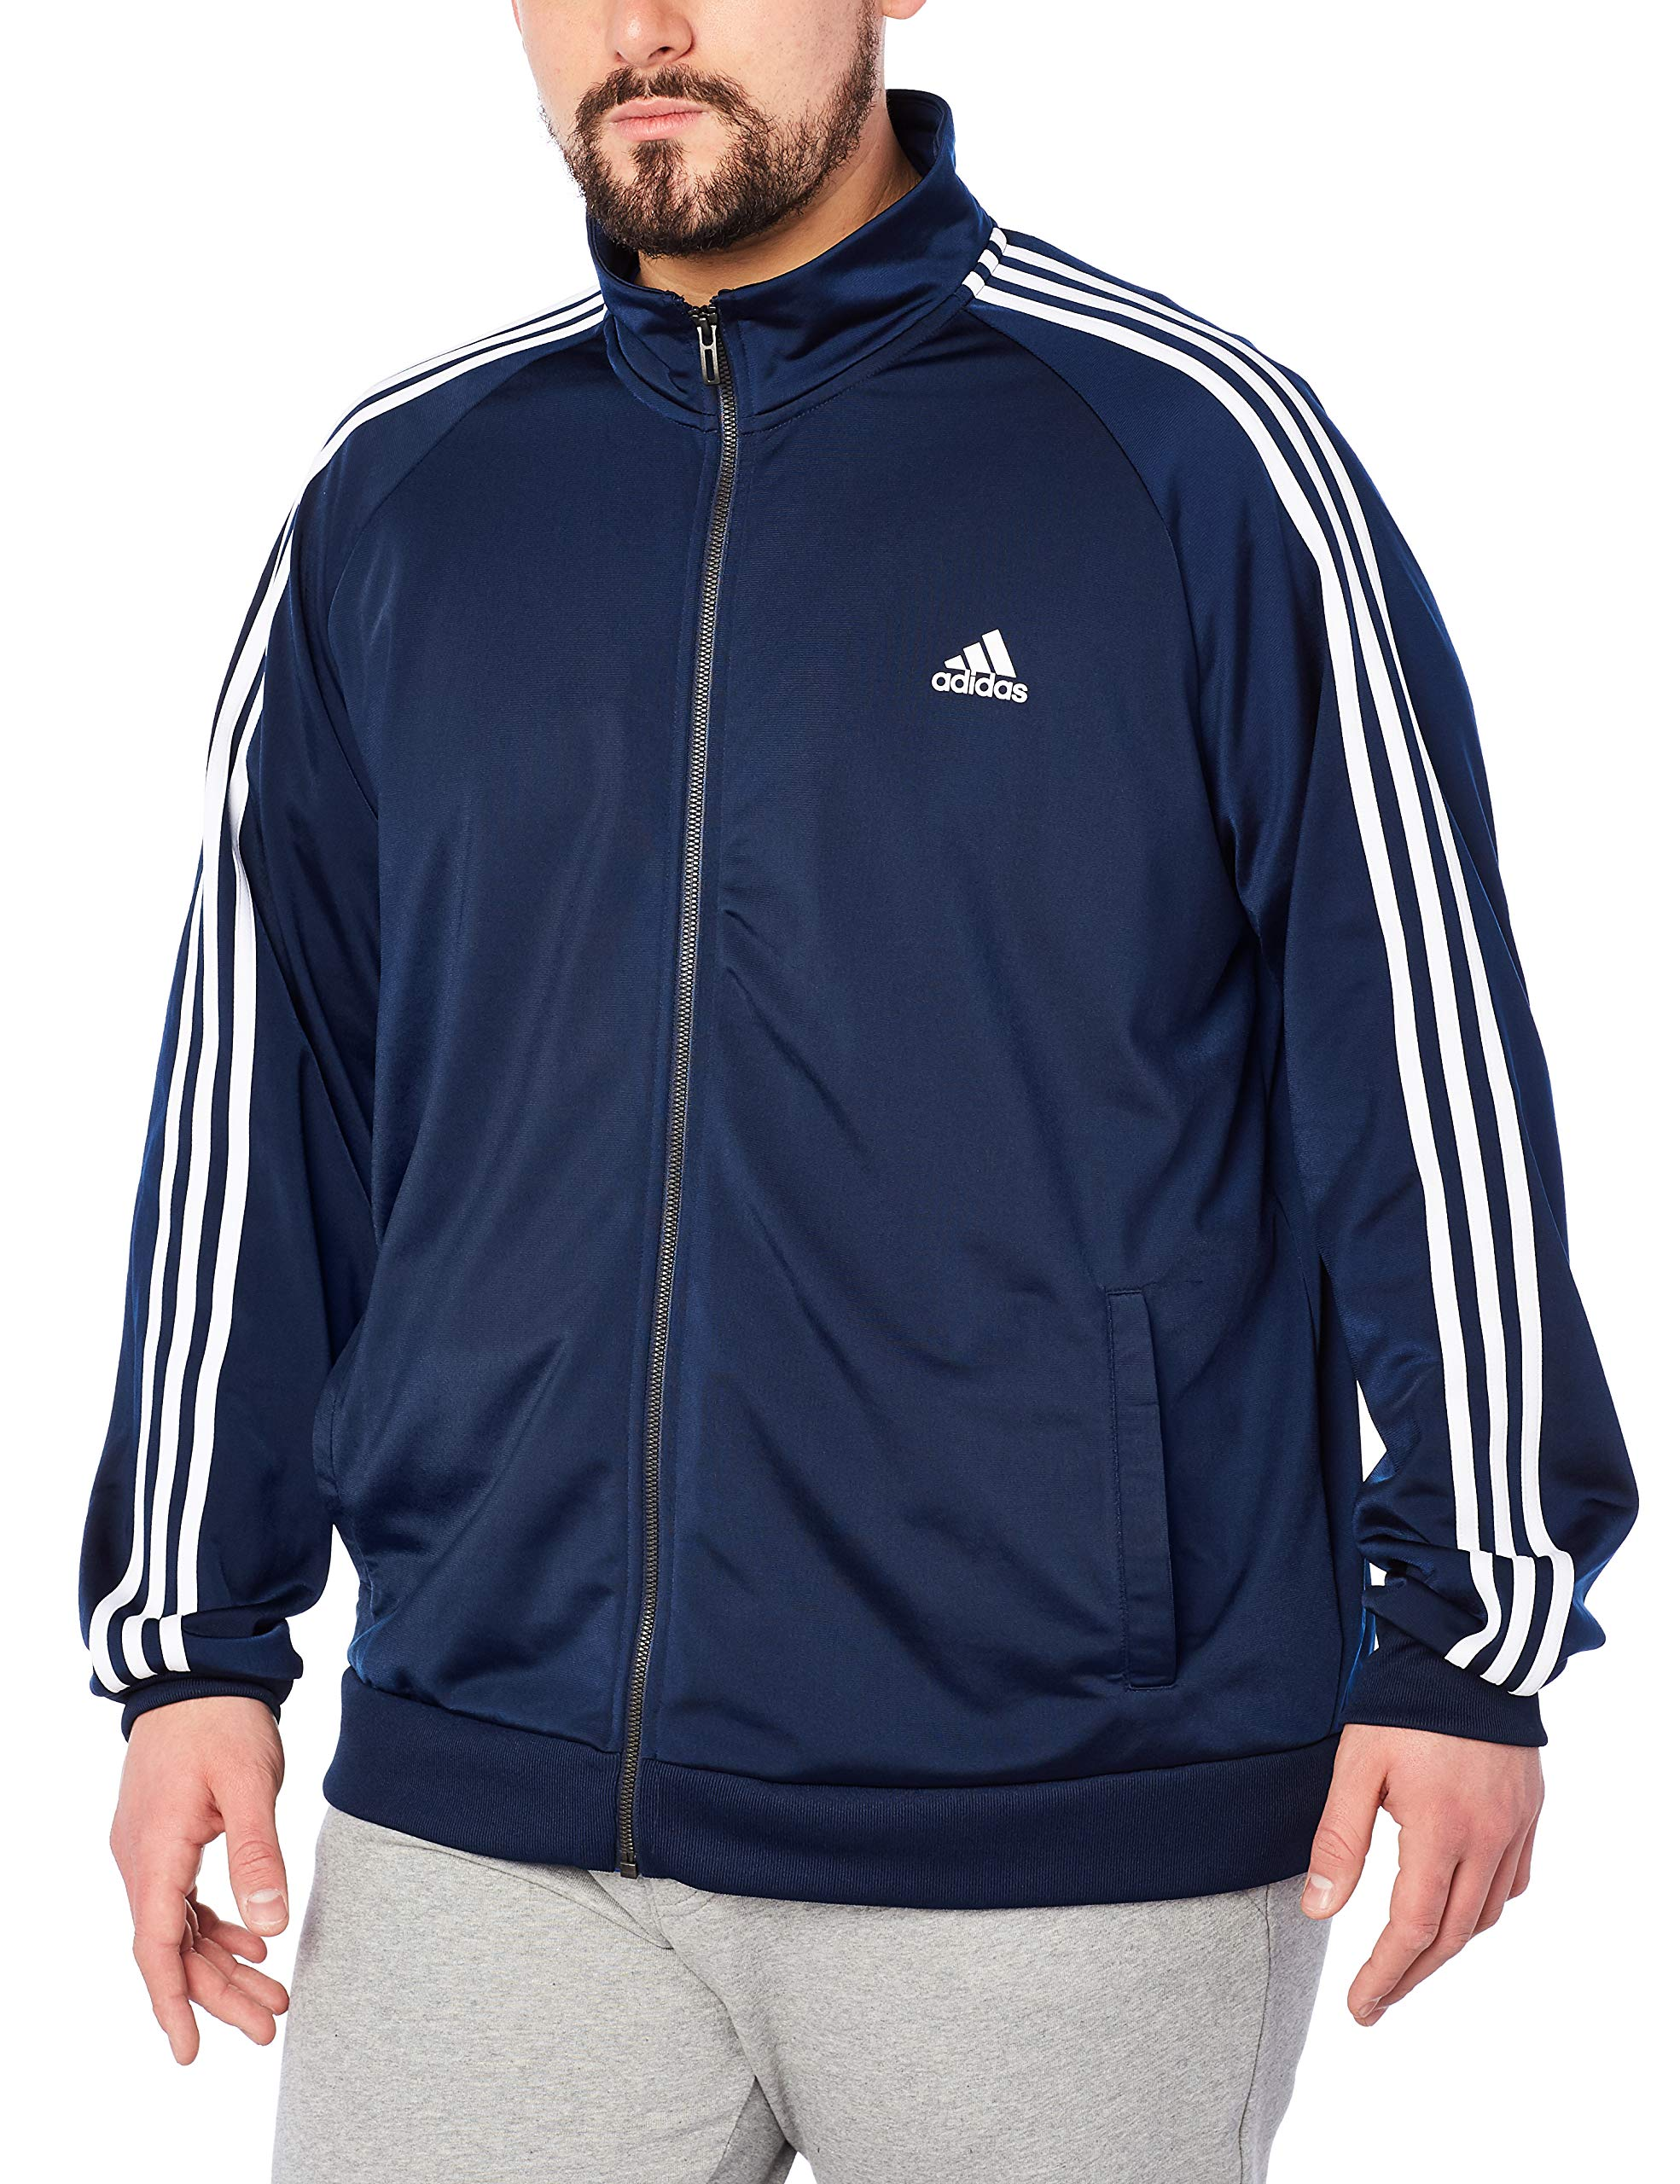 adidas Men's Essentials 3-Stripe Tricot Track Jacket, Collegiate Navy/White, Medium